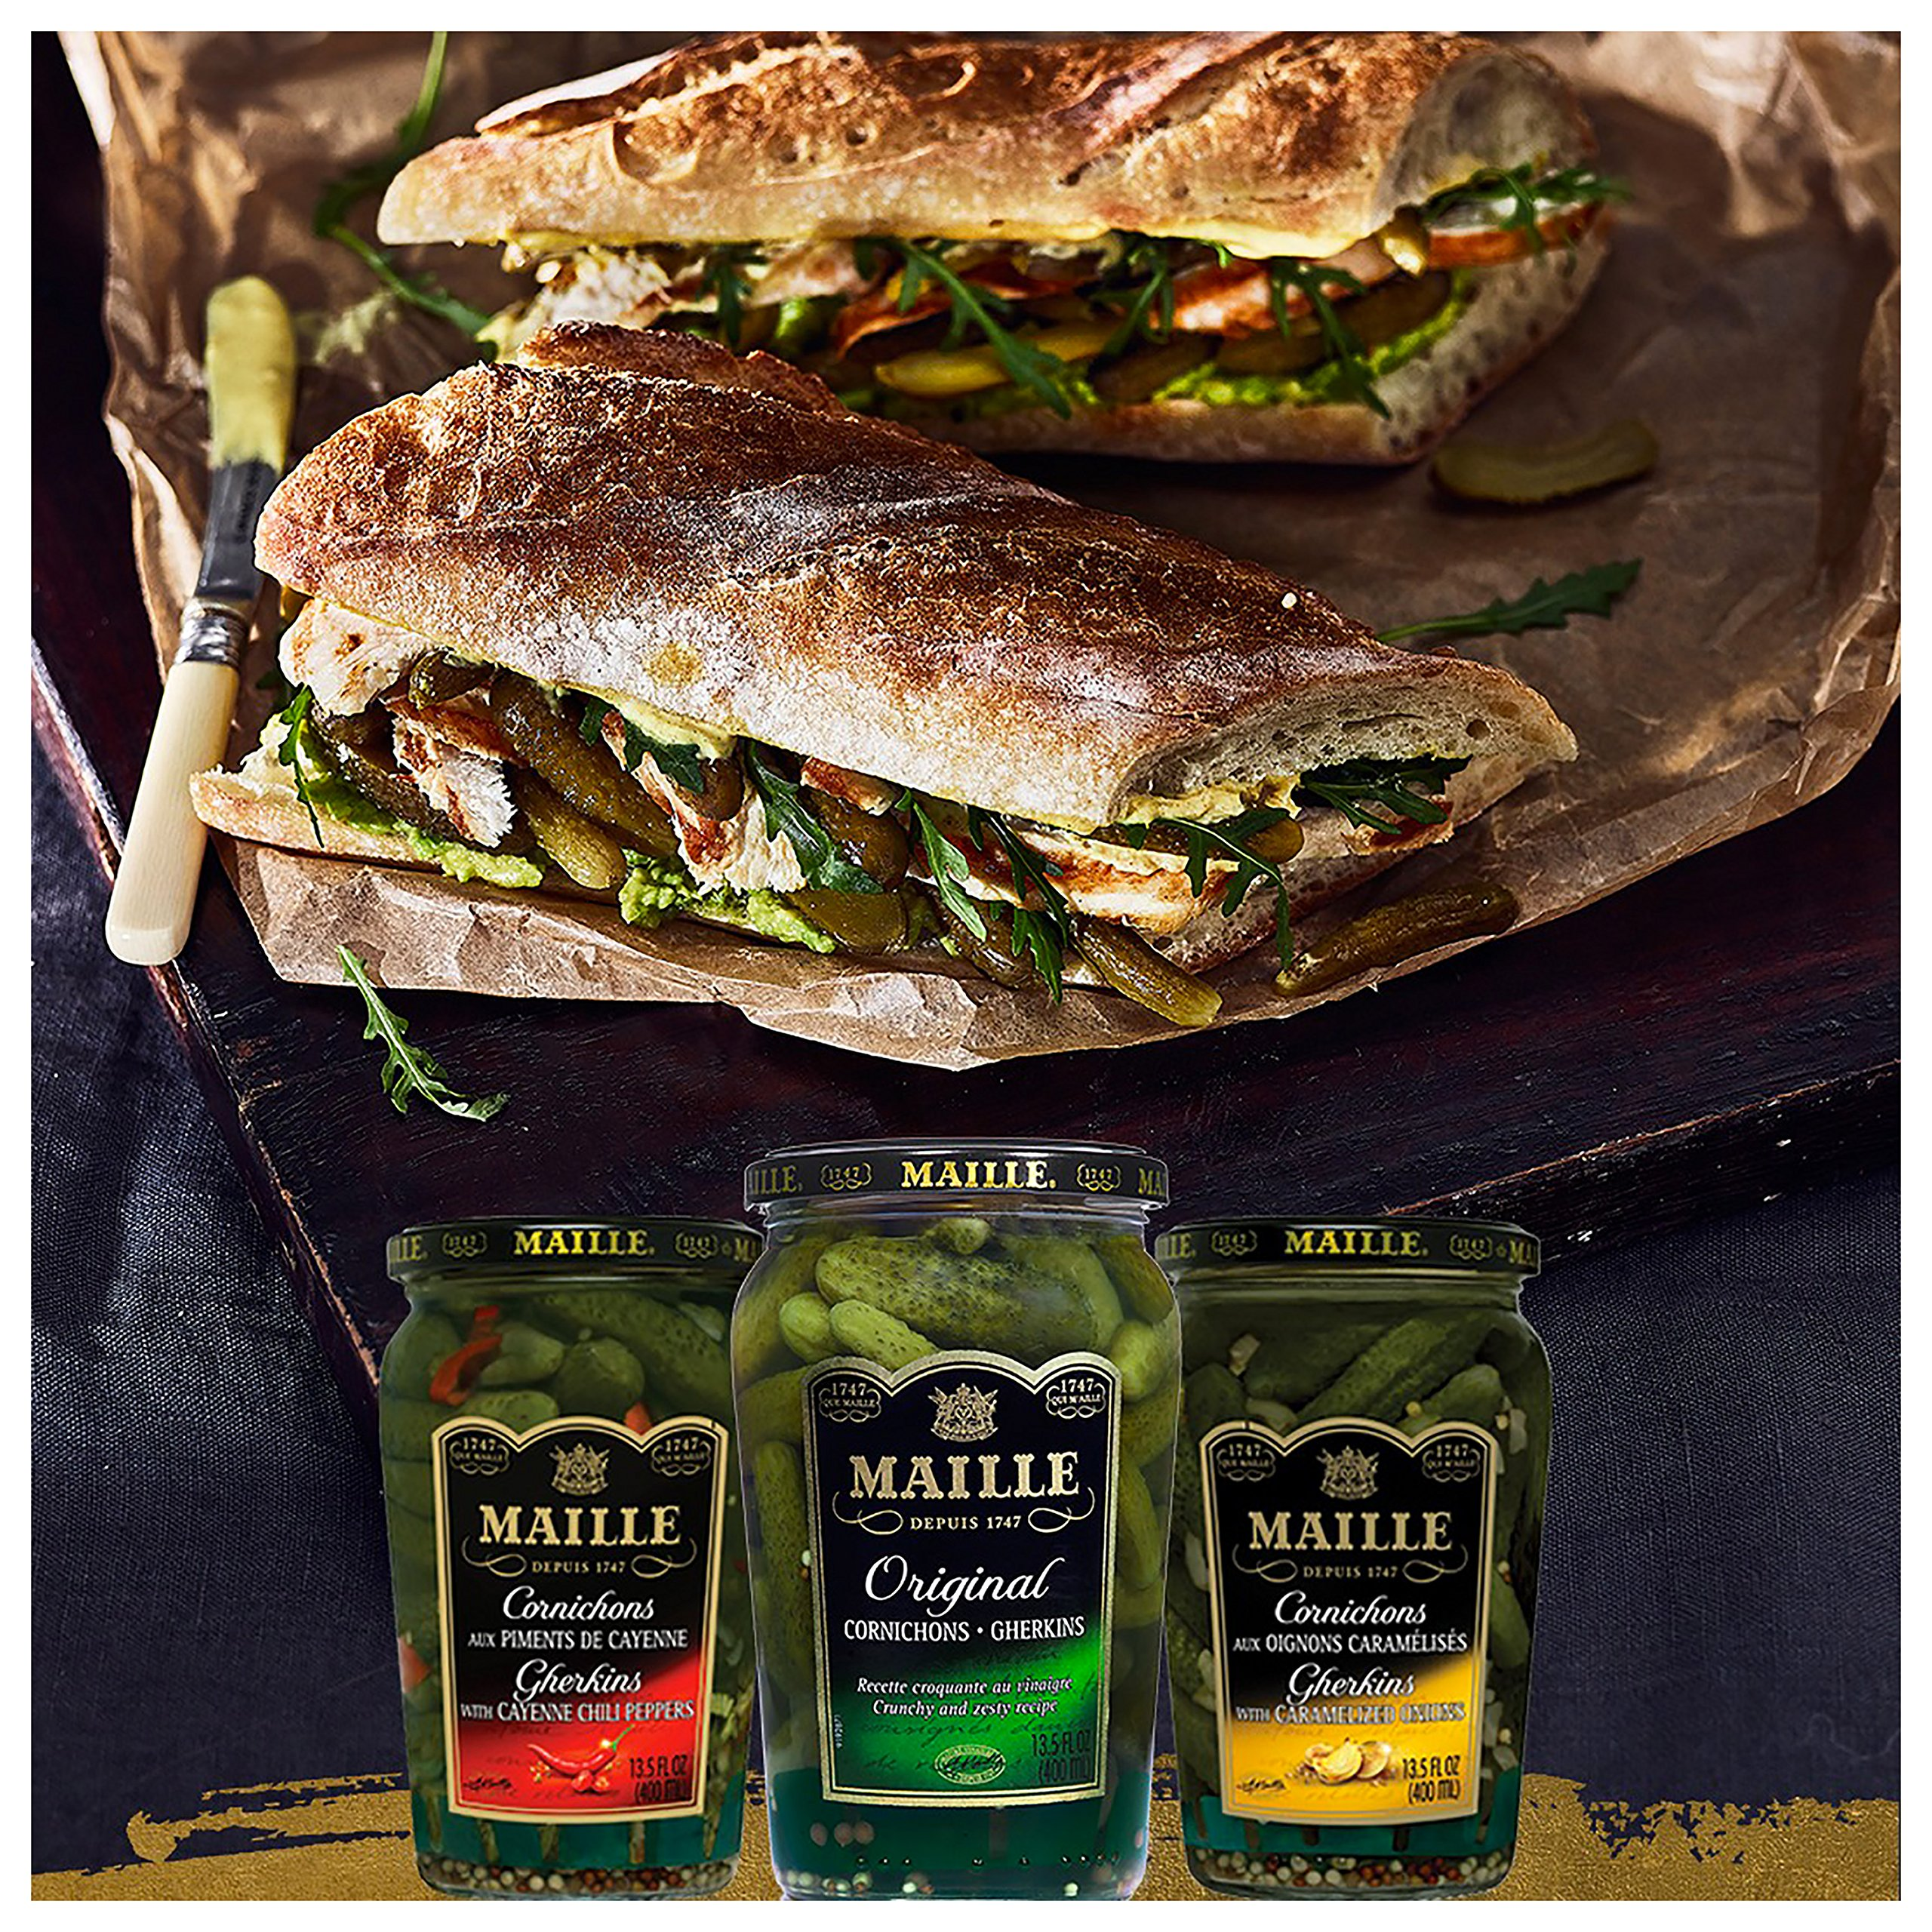 Maille Pickles, Cornichons Original, 13.5 oz, Pack of 12 by Maille (Image #5)